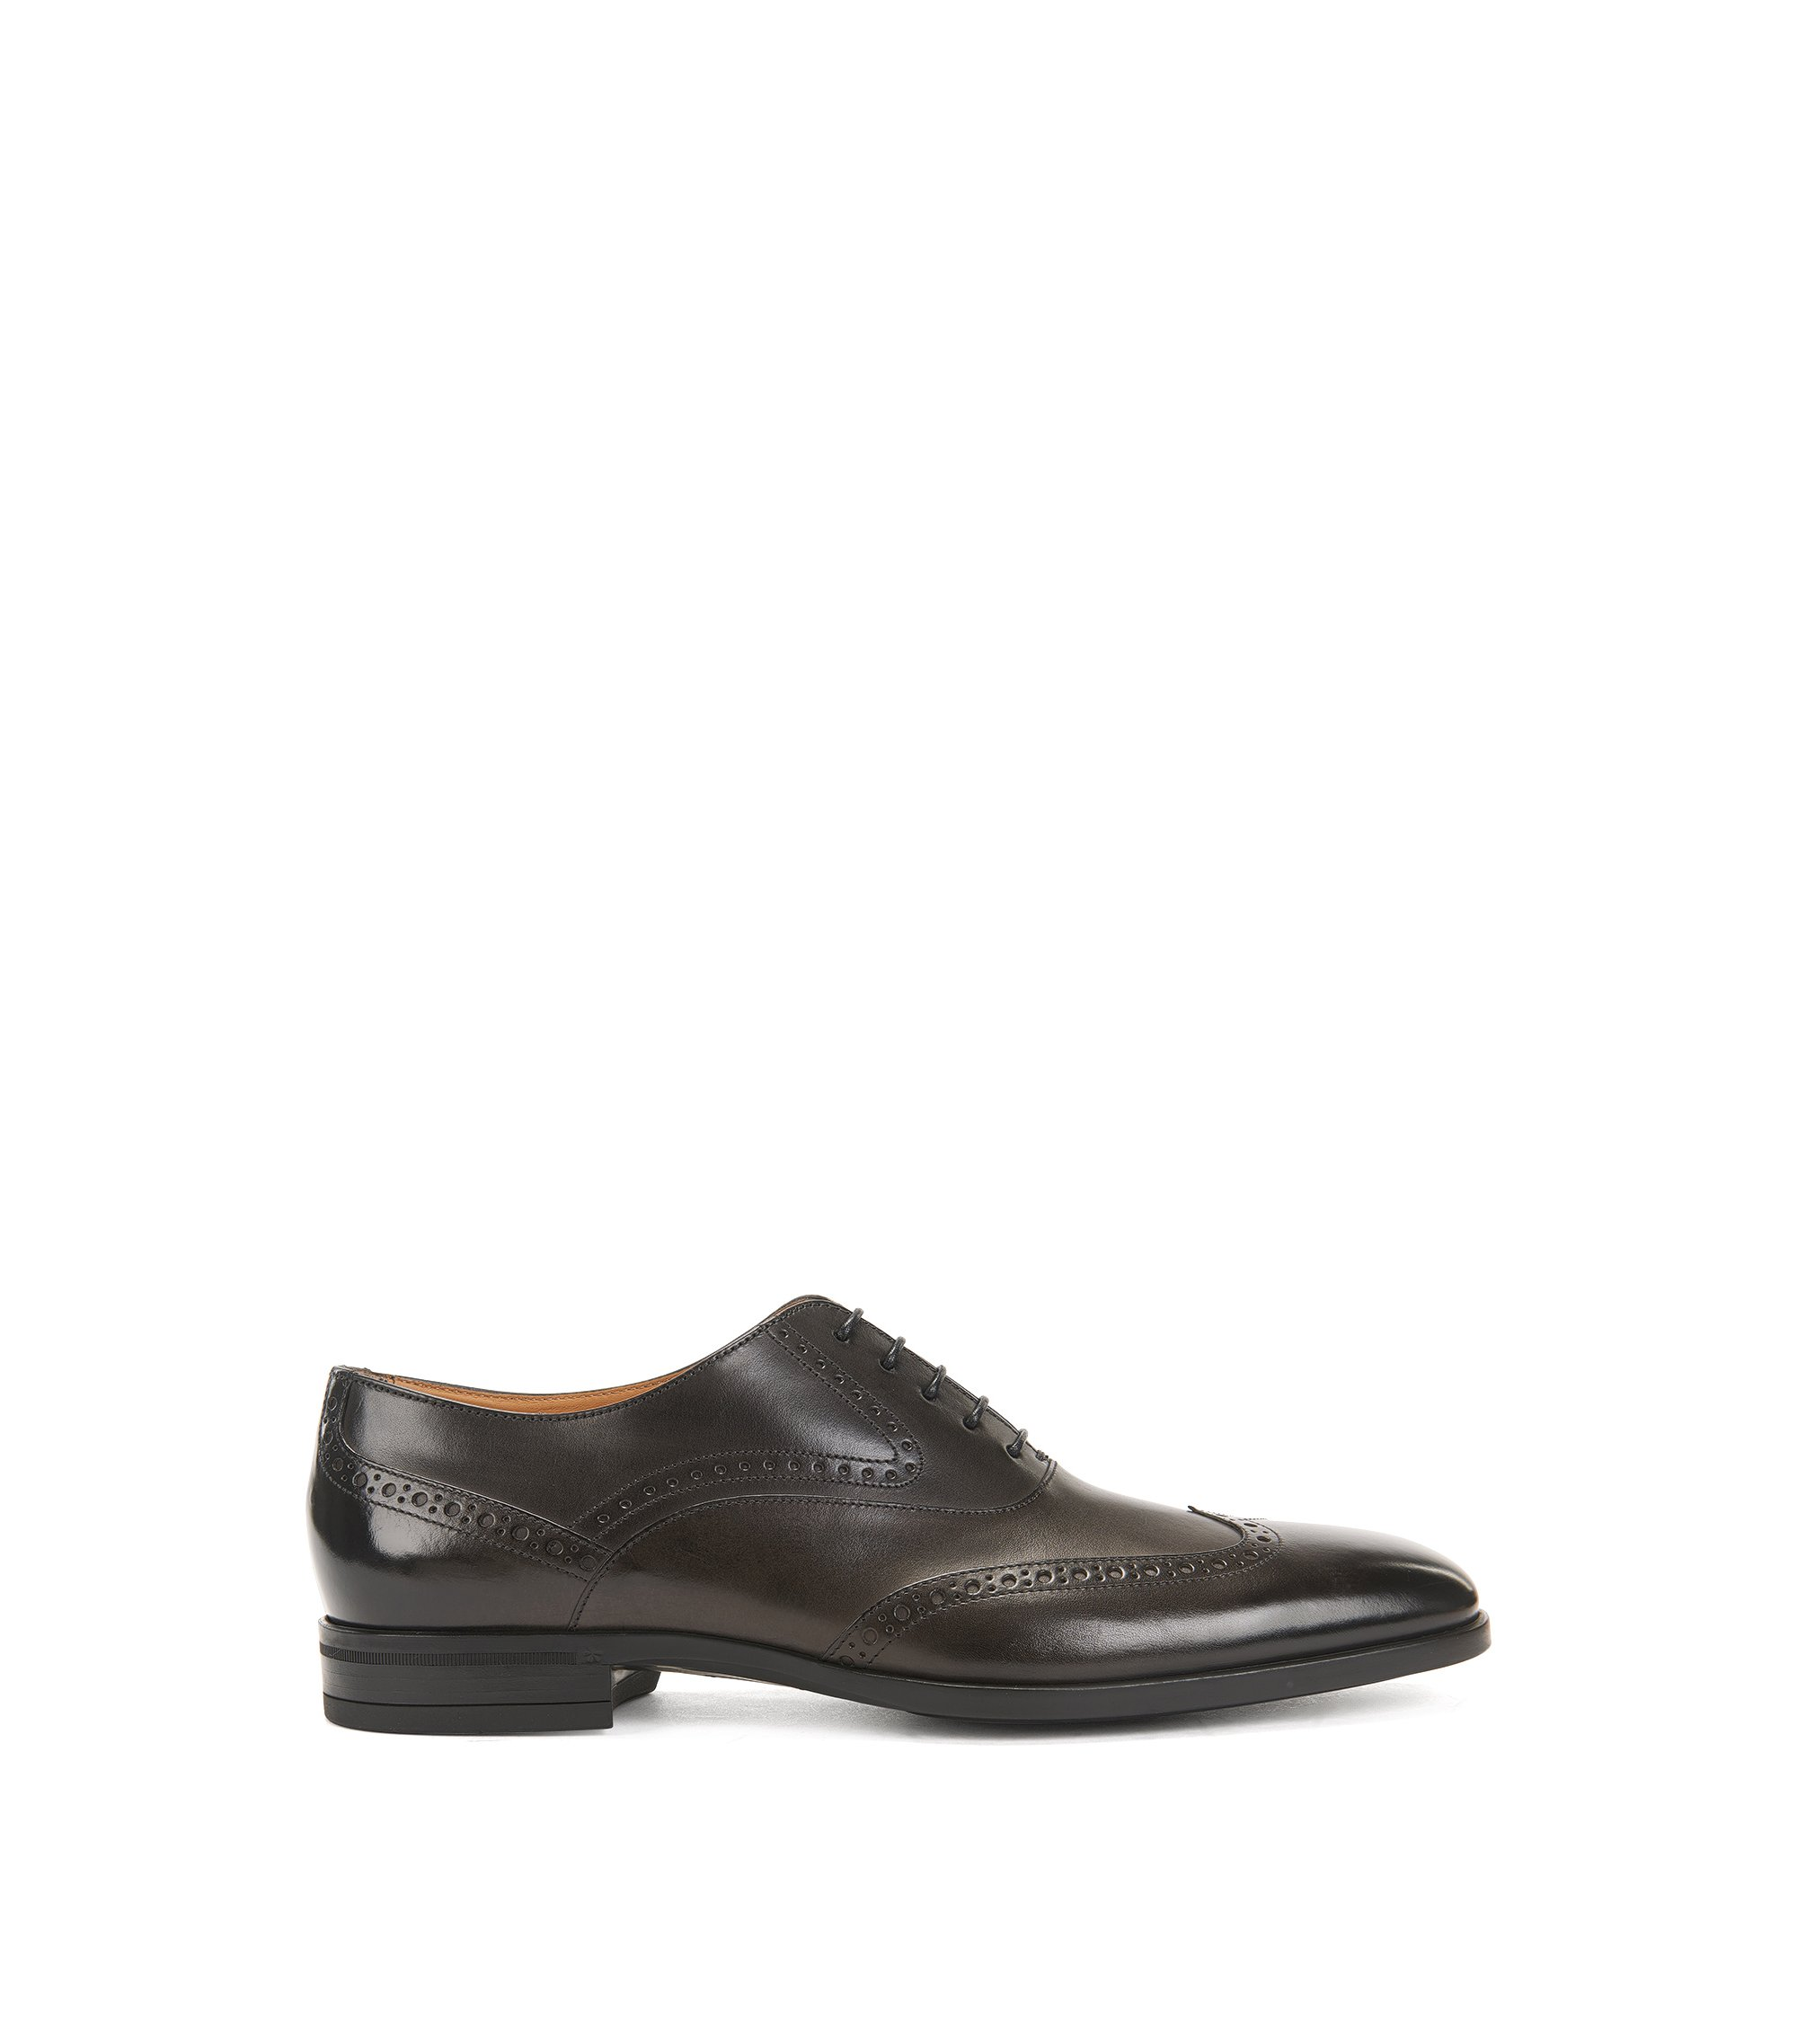 Leather Wingtip Shoe | Kensington Oxfr, Dark Grey